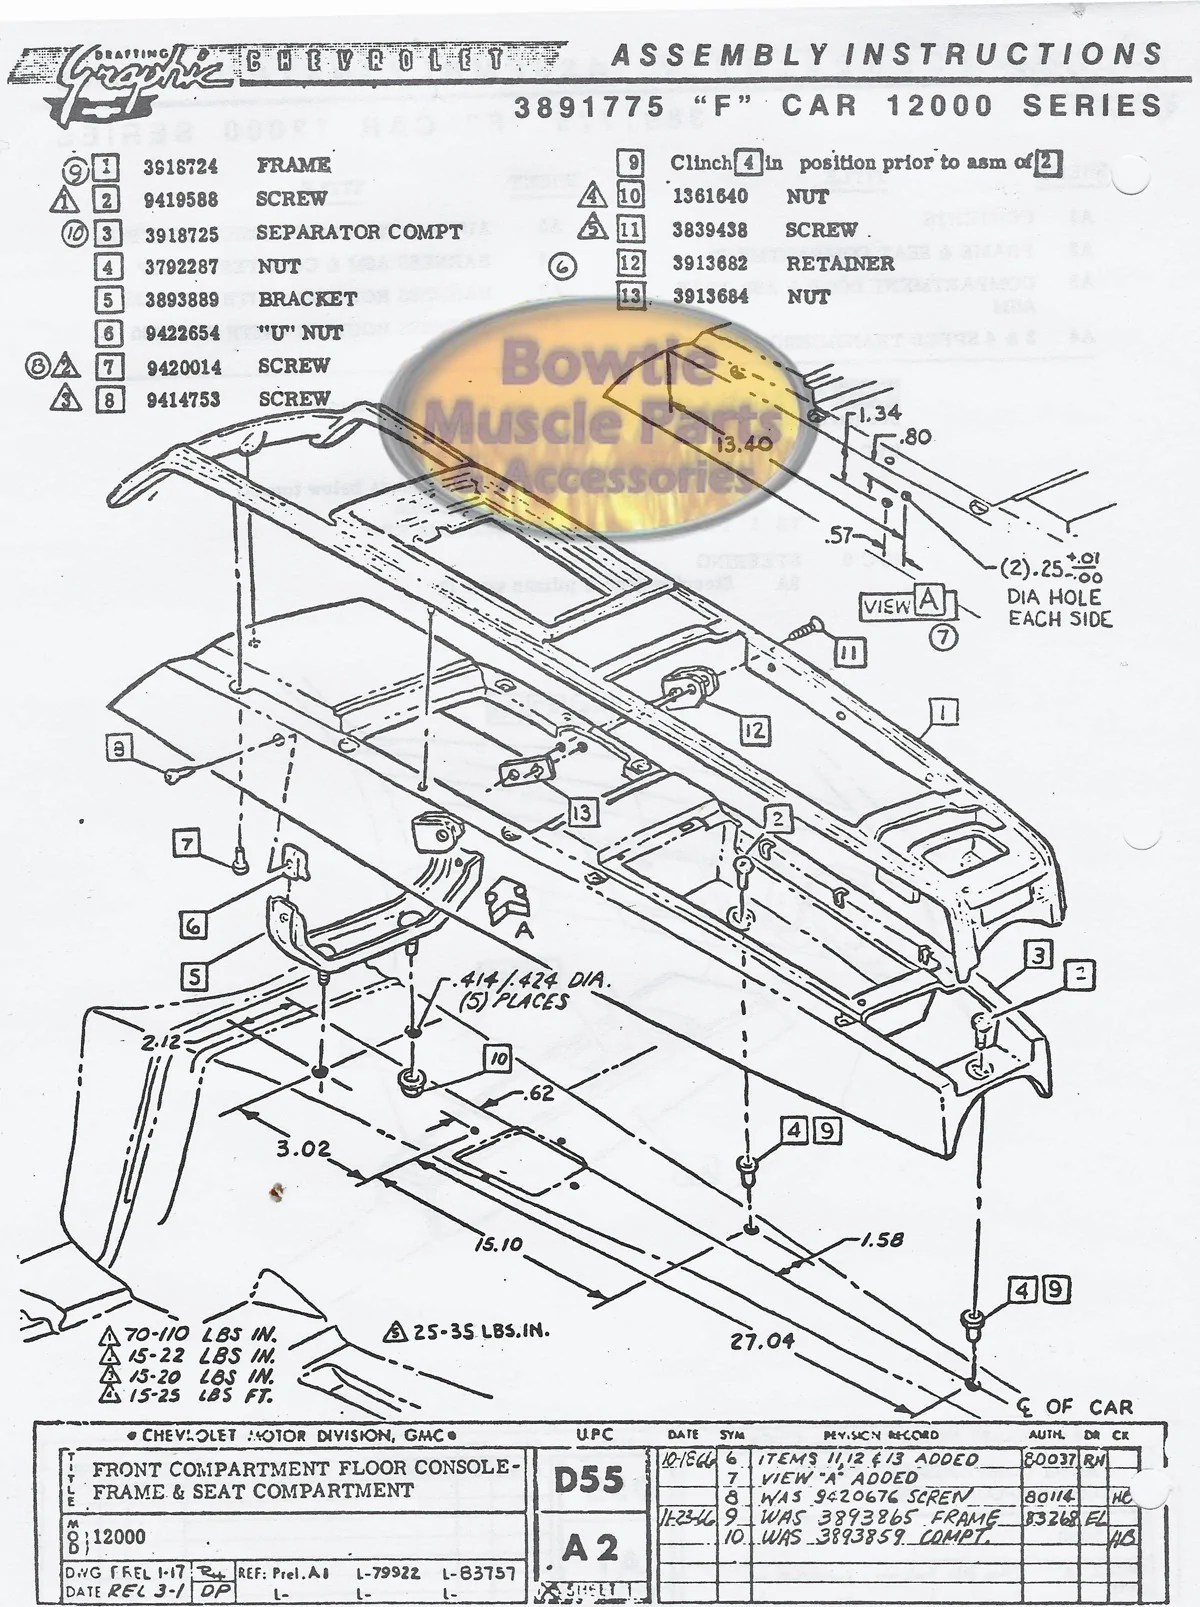 2003 vw jetta 2 0 thermostat location besides chevy s 10 intake diagram html together with